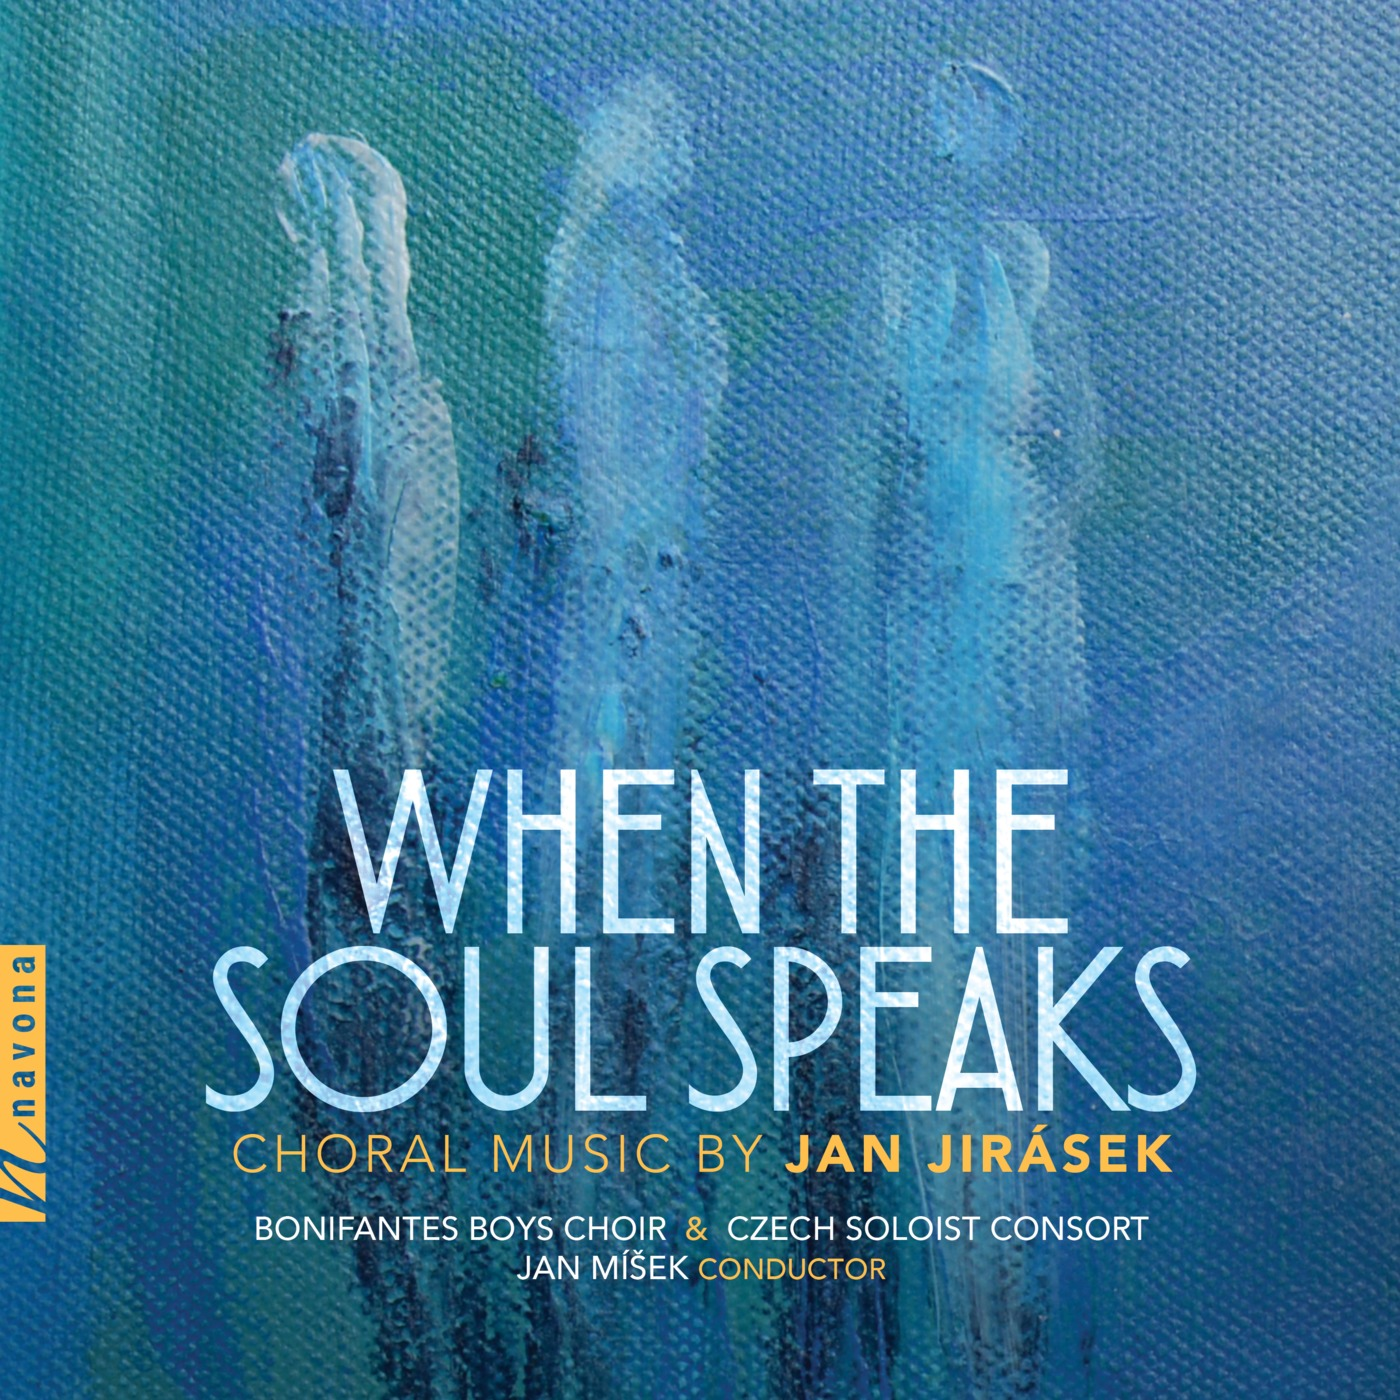 15075 PARMA Recordings - When the Soul Speaks - Classical